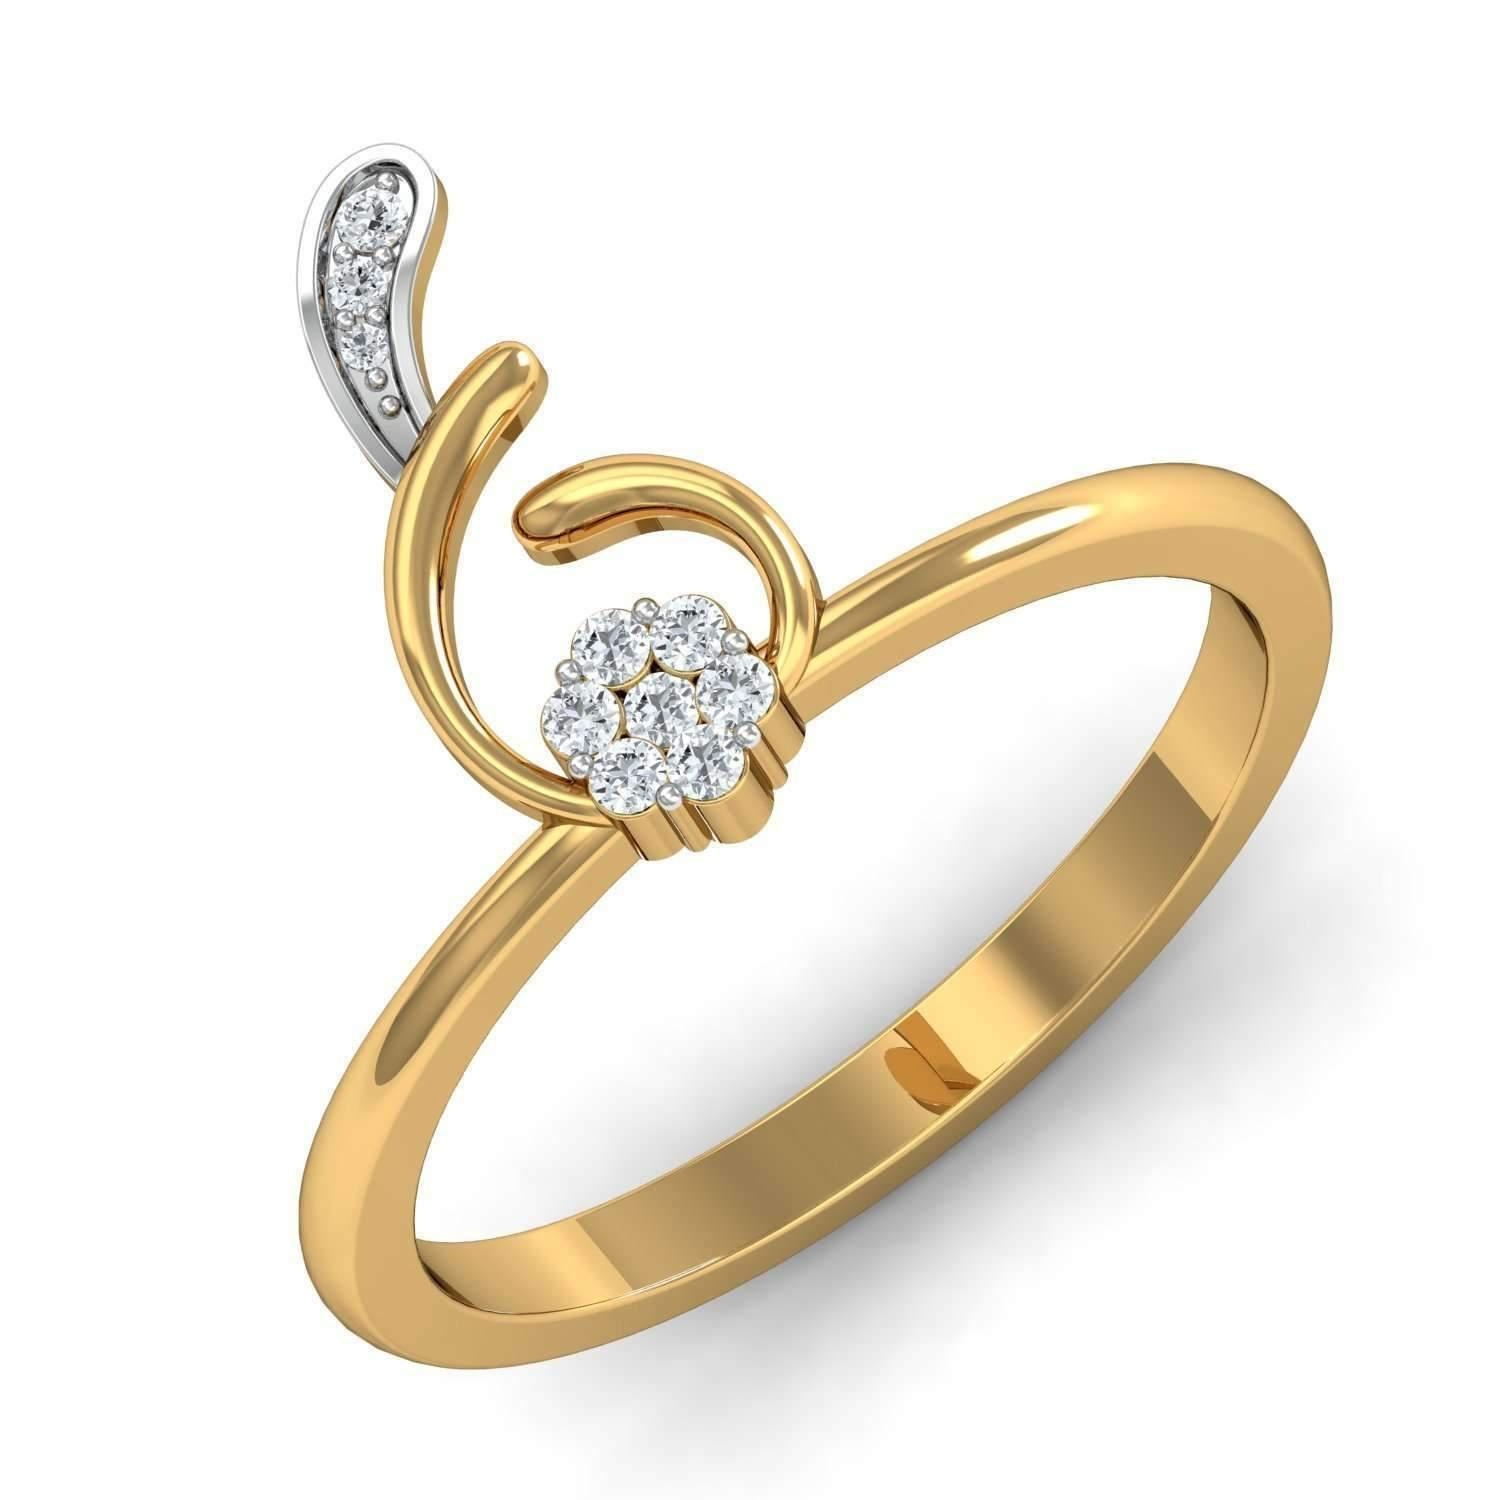 Diamoire Jewels Glamorous Water Drop Ring in 18Kt Yellow Gold FIOTR